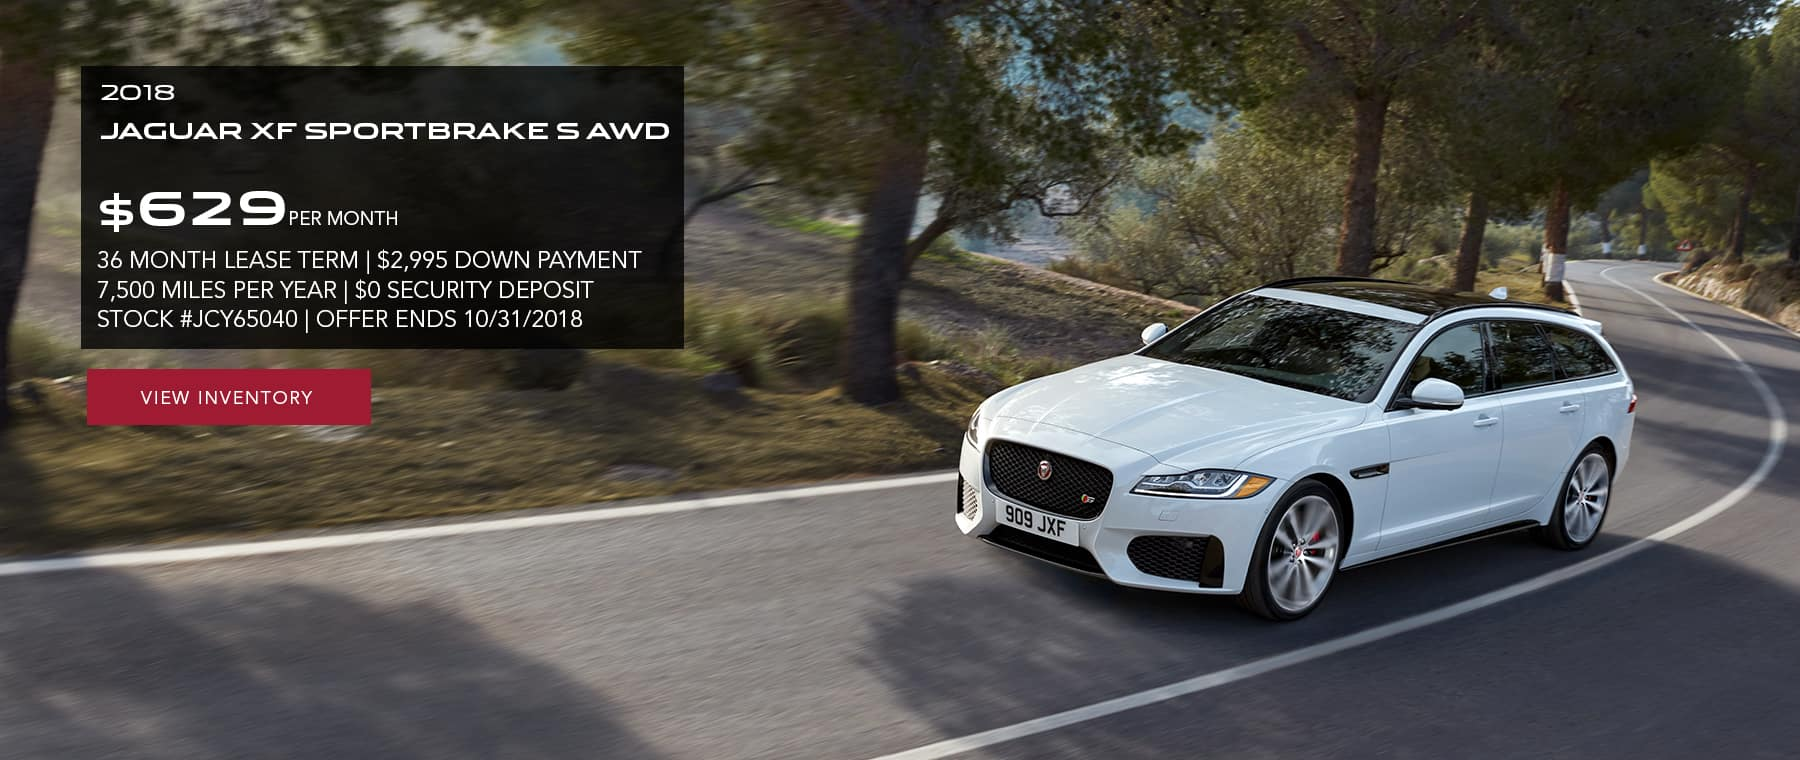 Nice Check Dealer For Availability. Offer Must Be Presented At Time Of Purchase.  See Jaguar Of Paramus For Details.